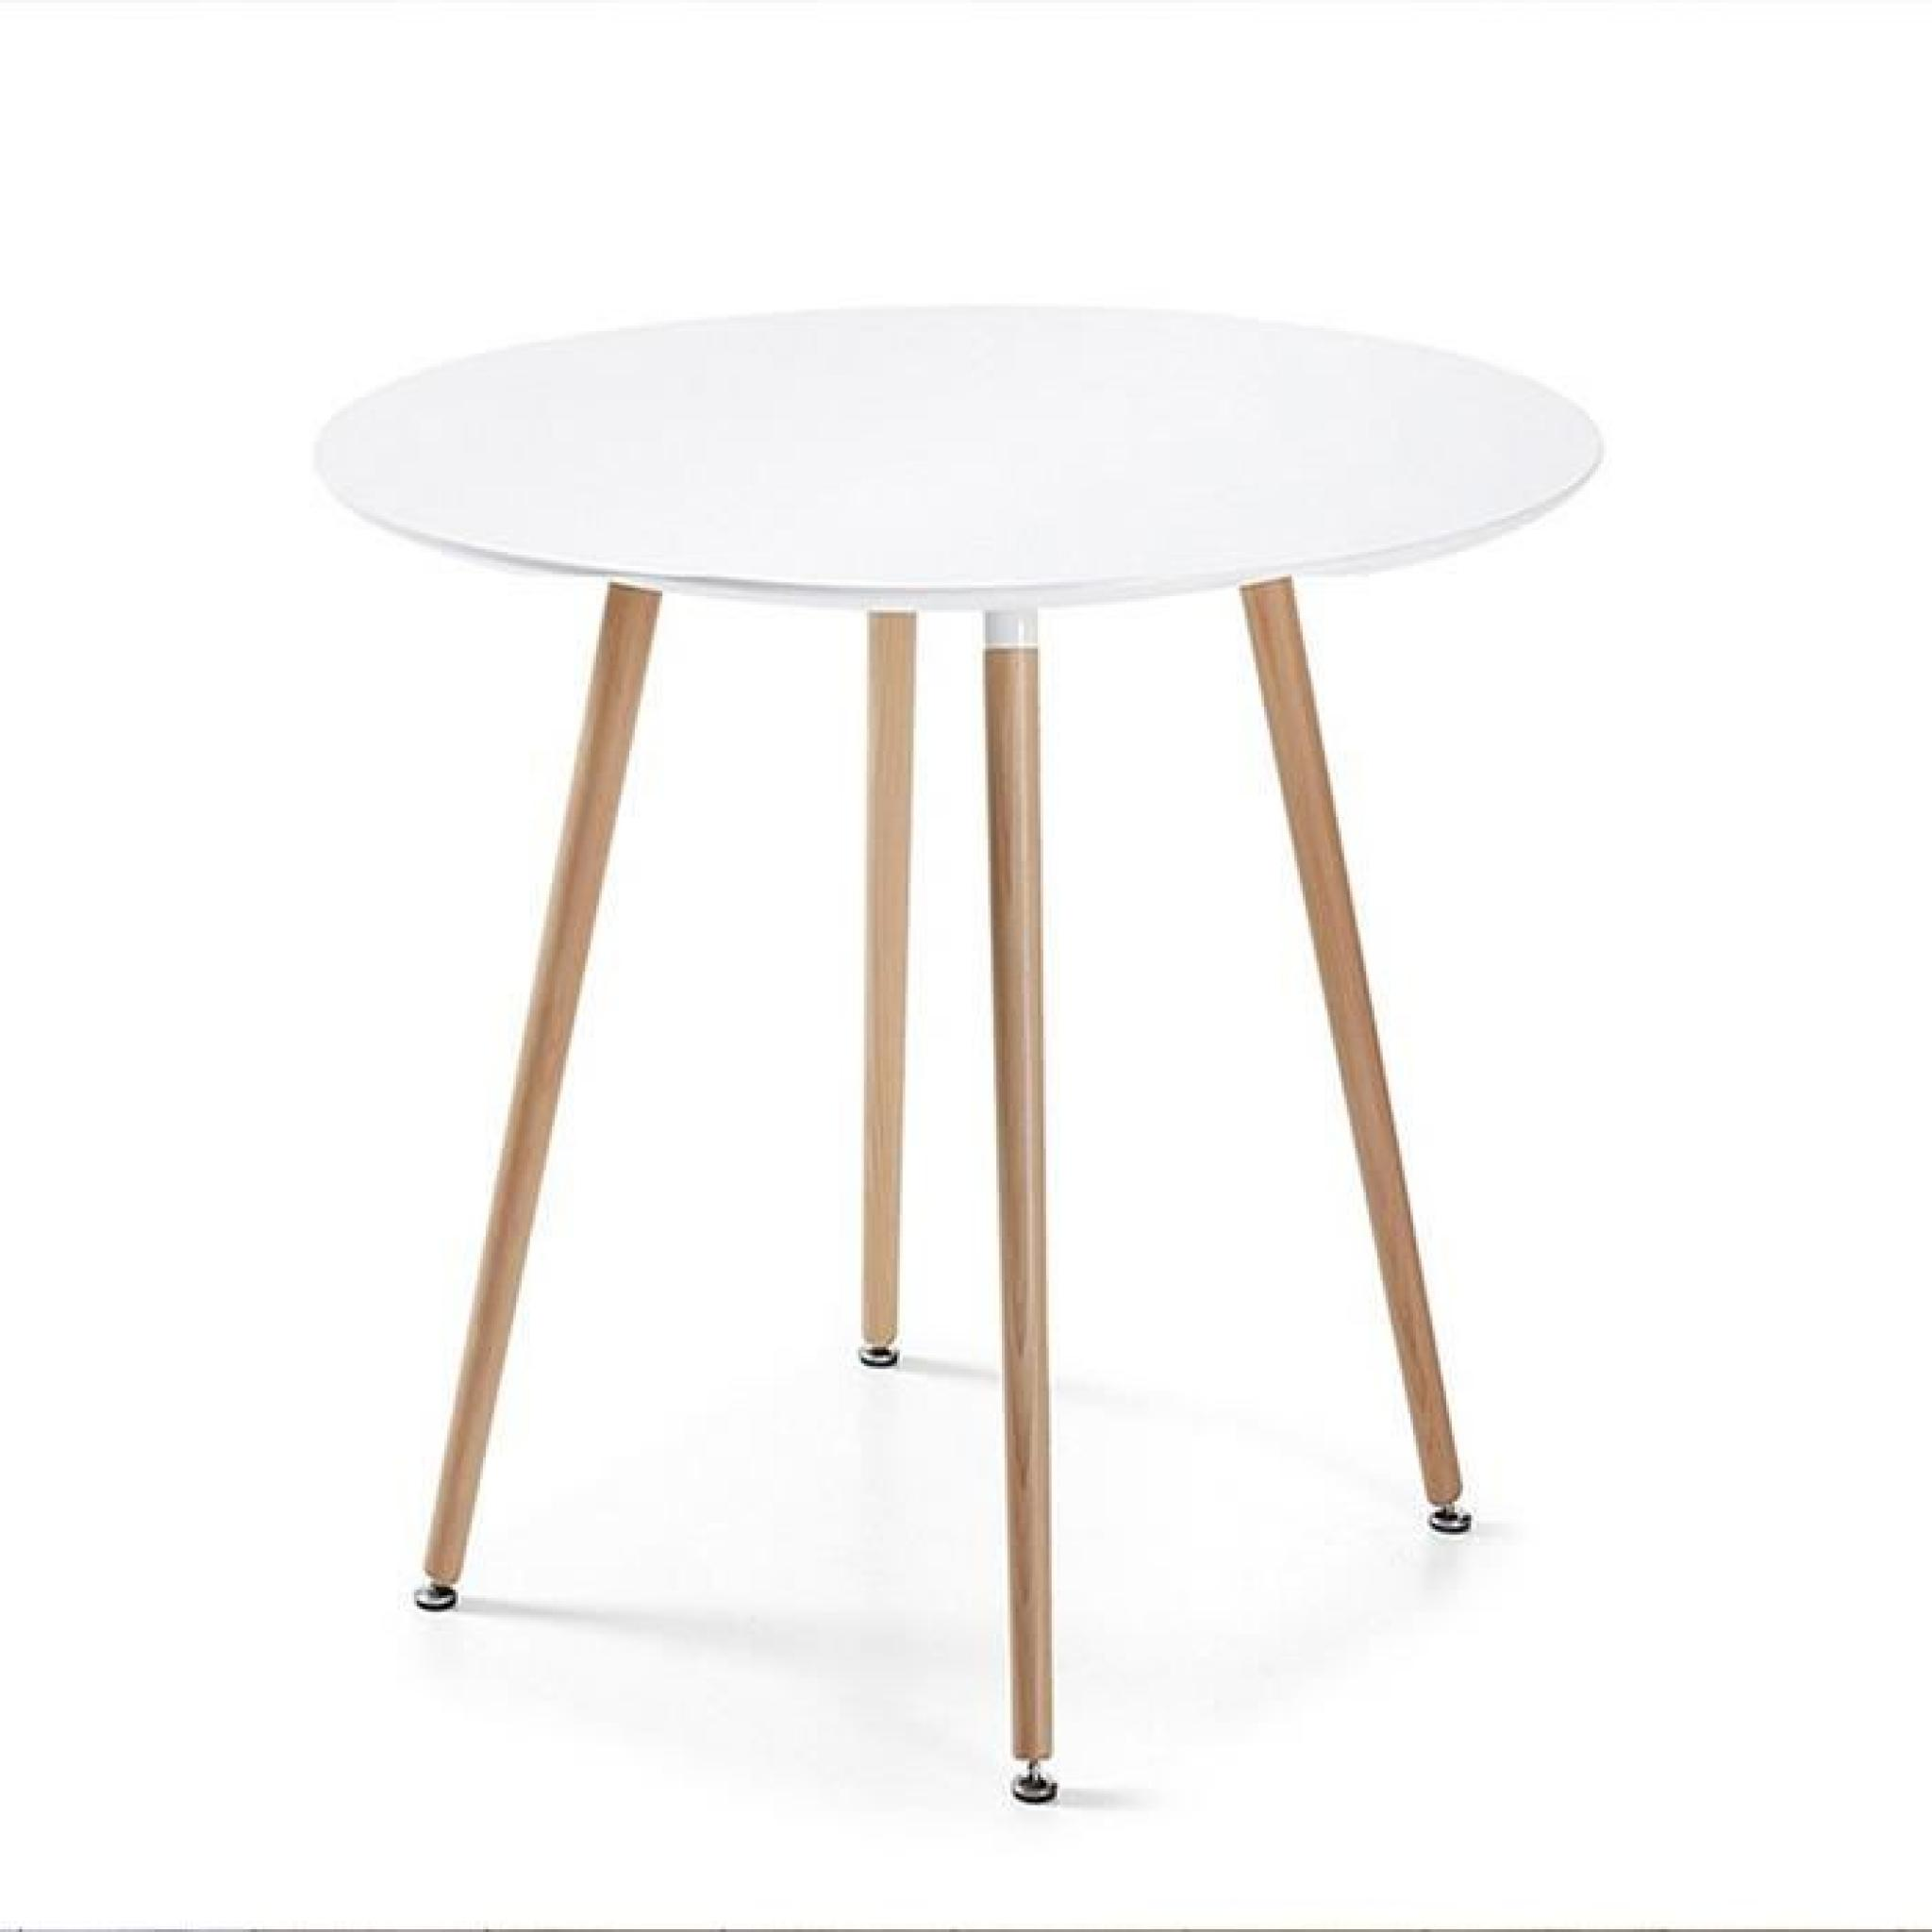 Table Salle A Manger Ronde Blanche Table à Manger Ronde Blanche Design 100cm Alta Achat